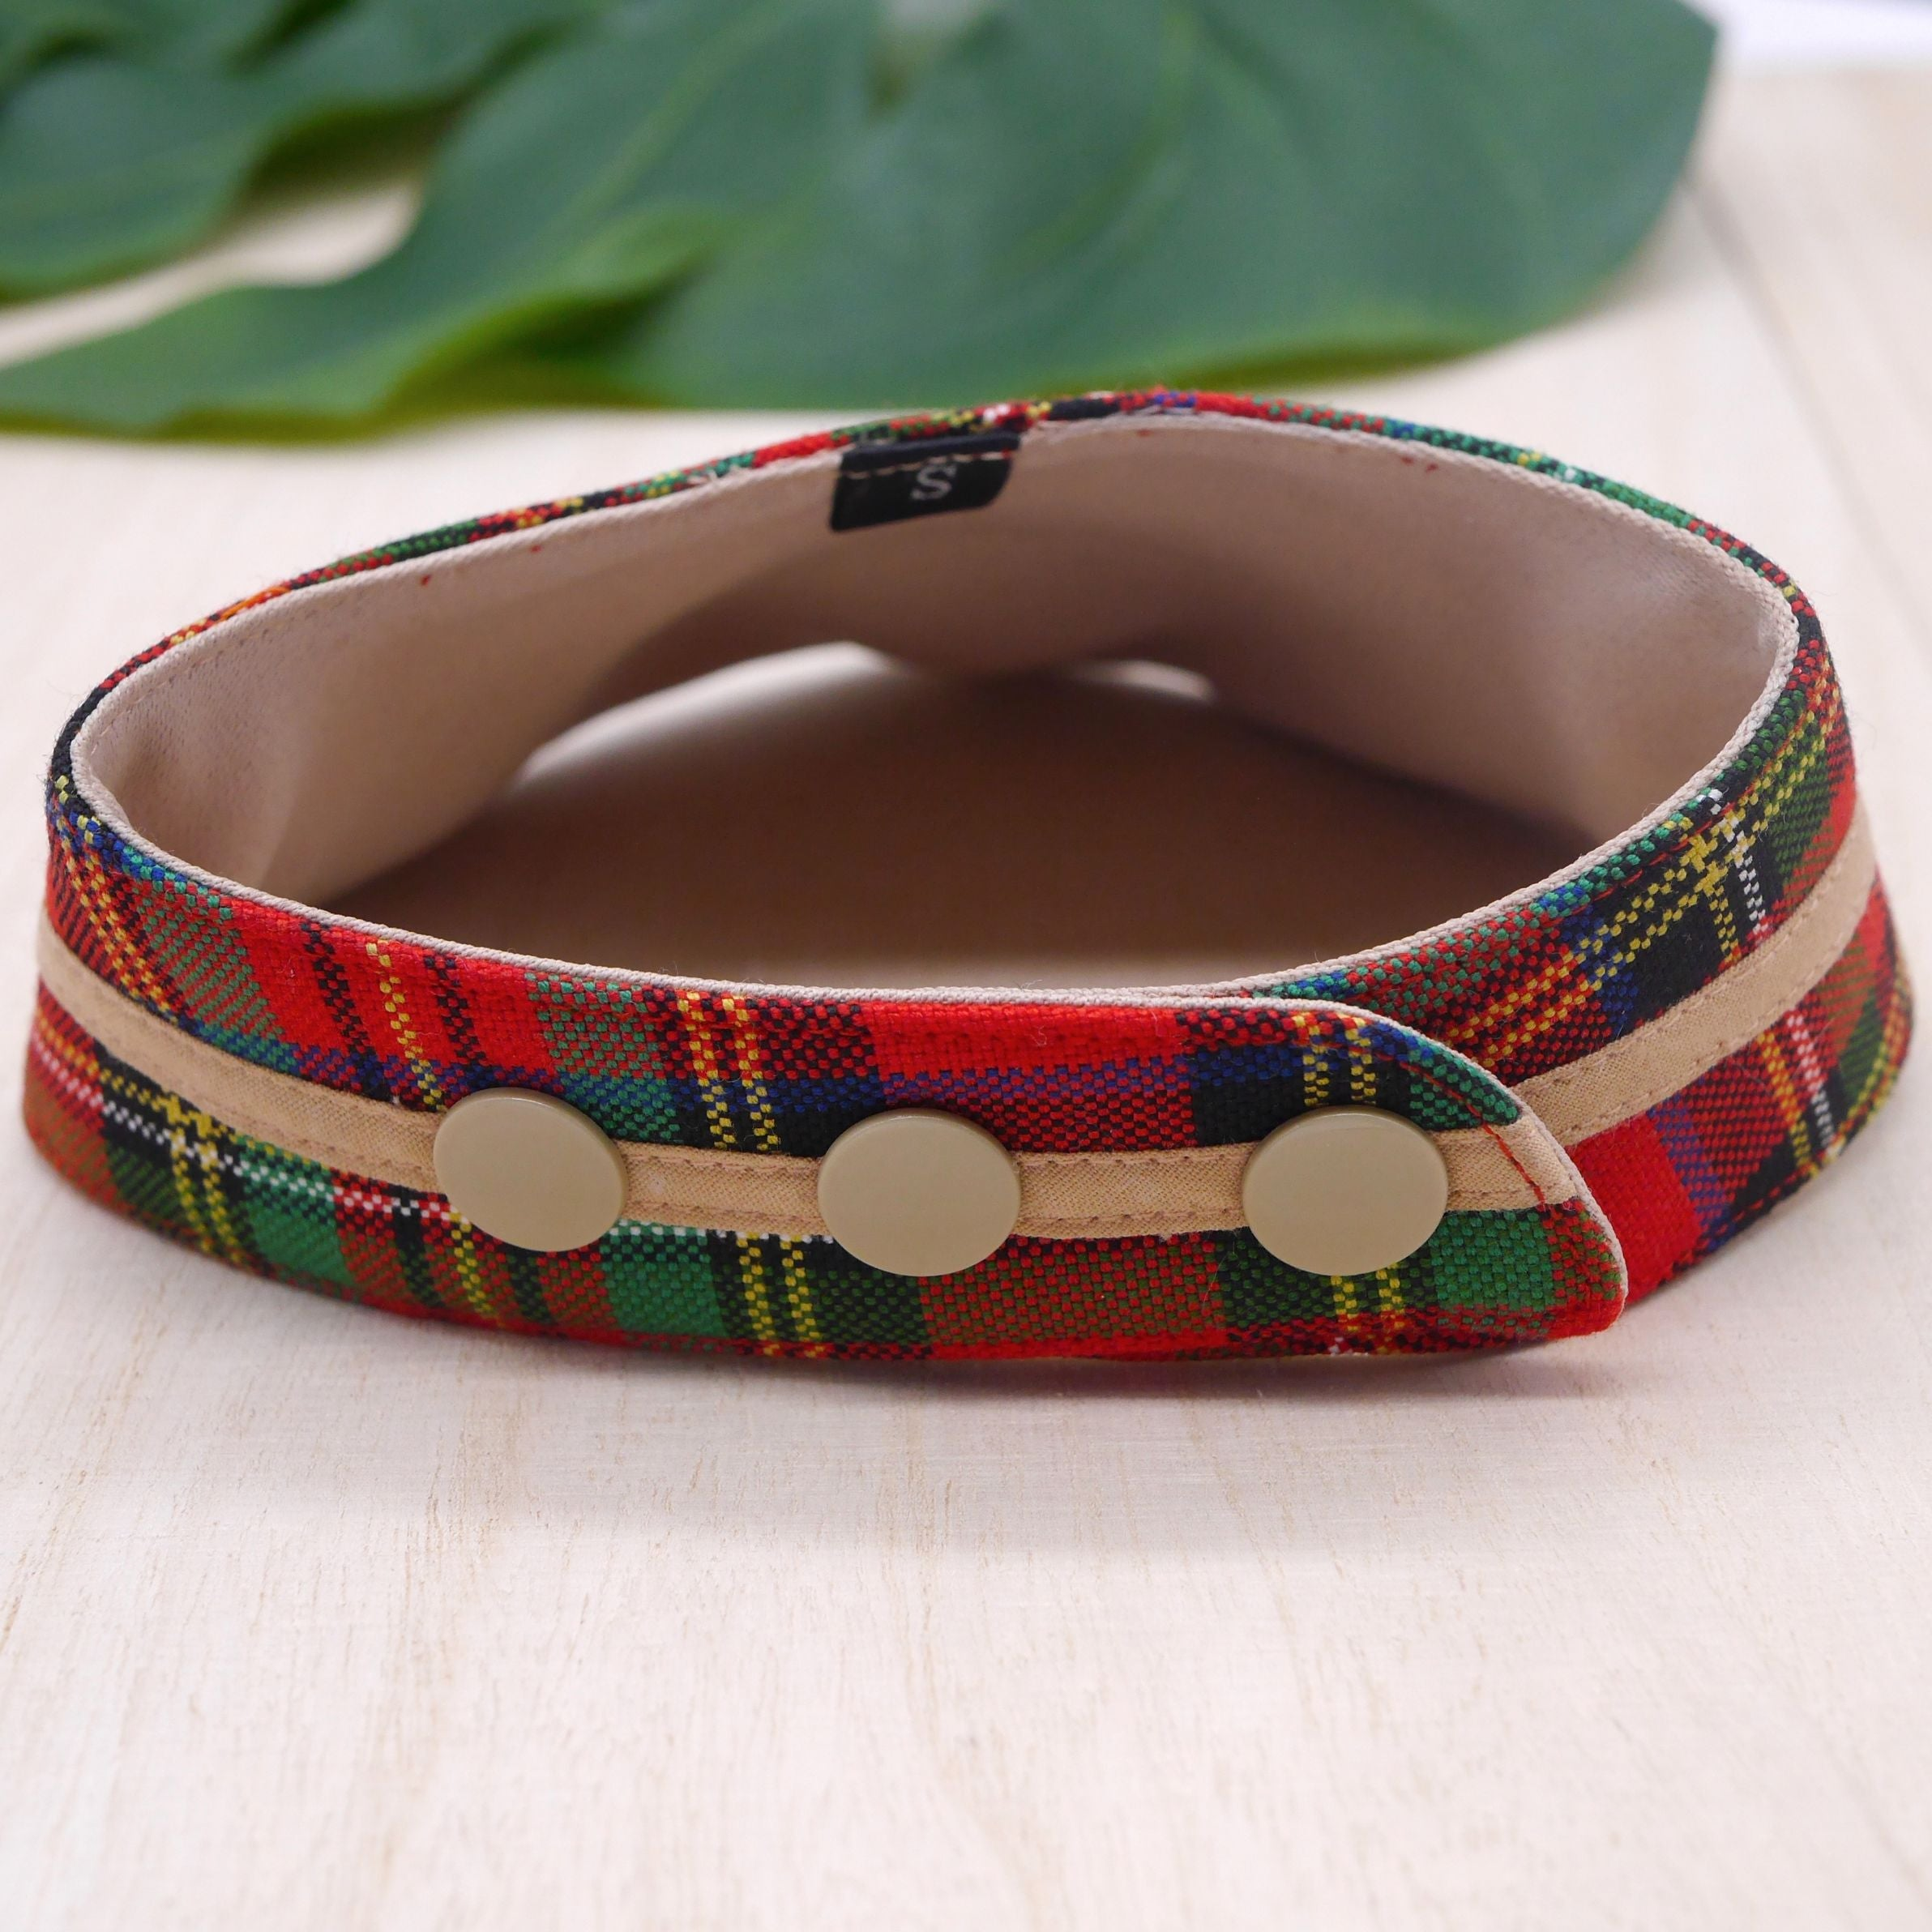 Bandanas - Royal Tartan Print with Brown Band - The Pet's Couture